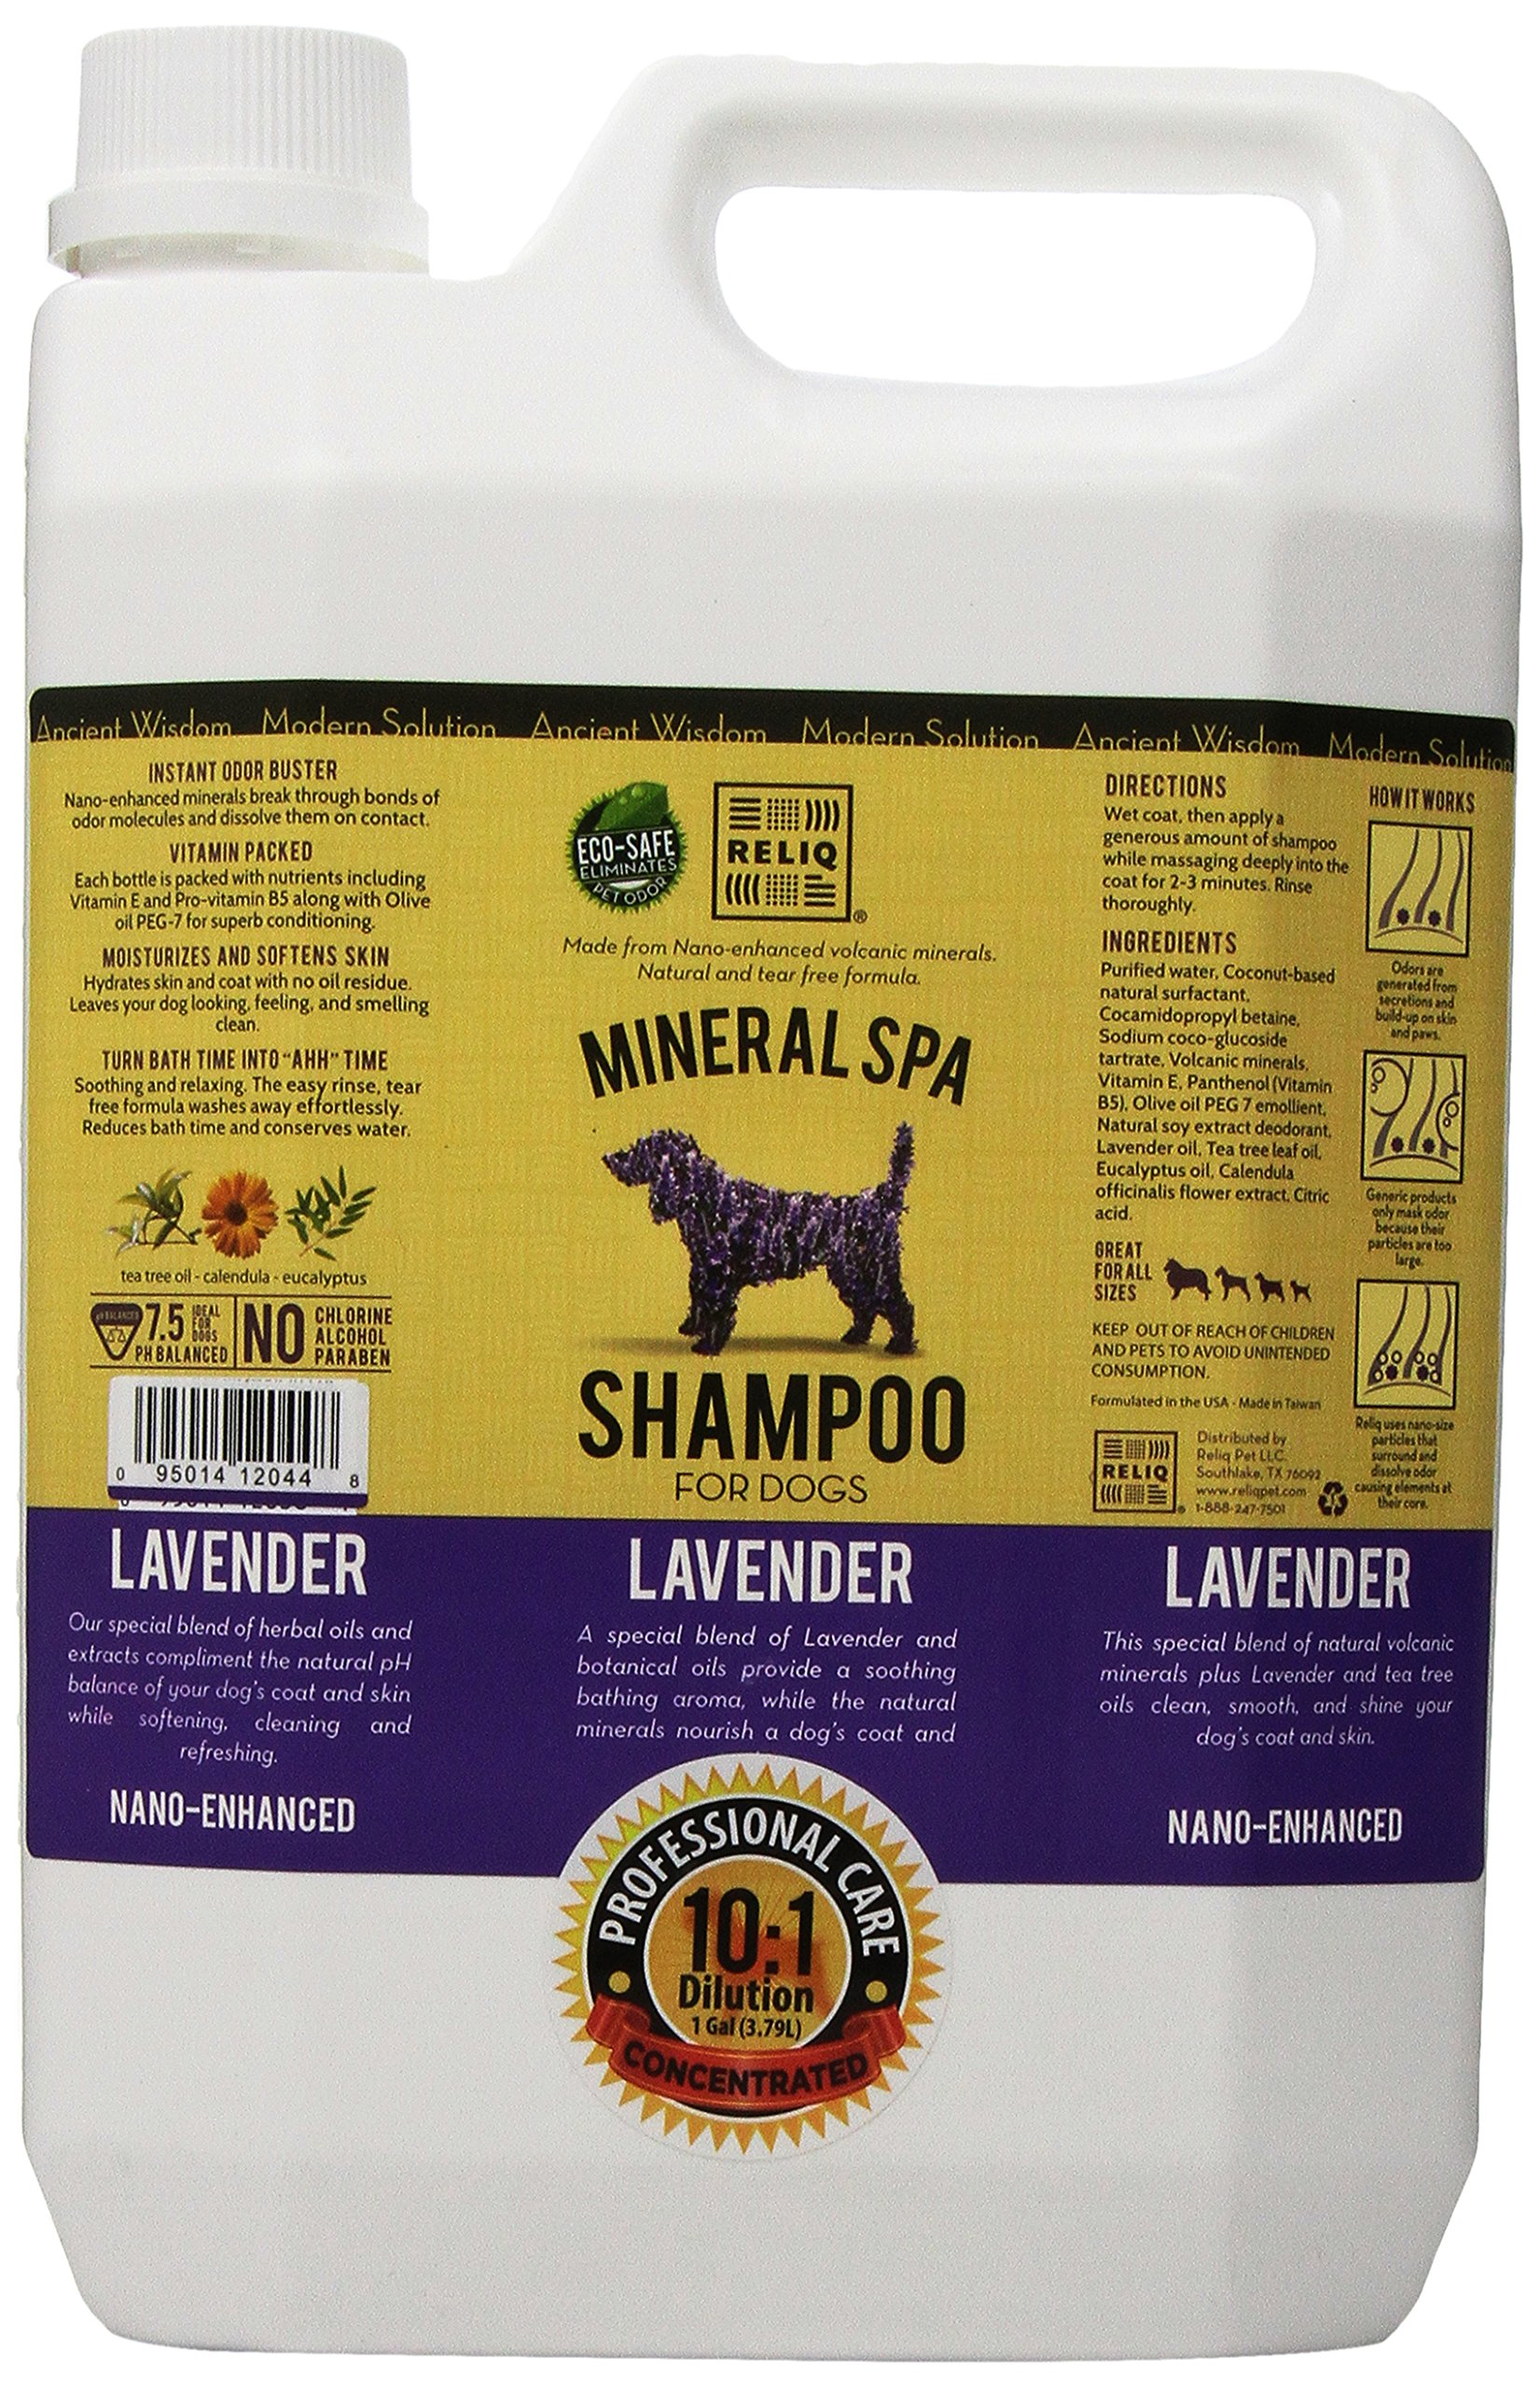 RELIQ Mineral SPA Shampoo for Dogs, 1-Gallon, Lavender